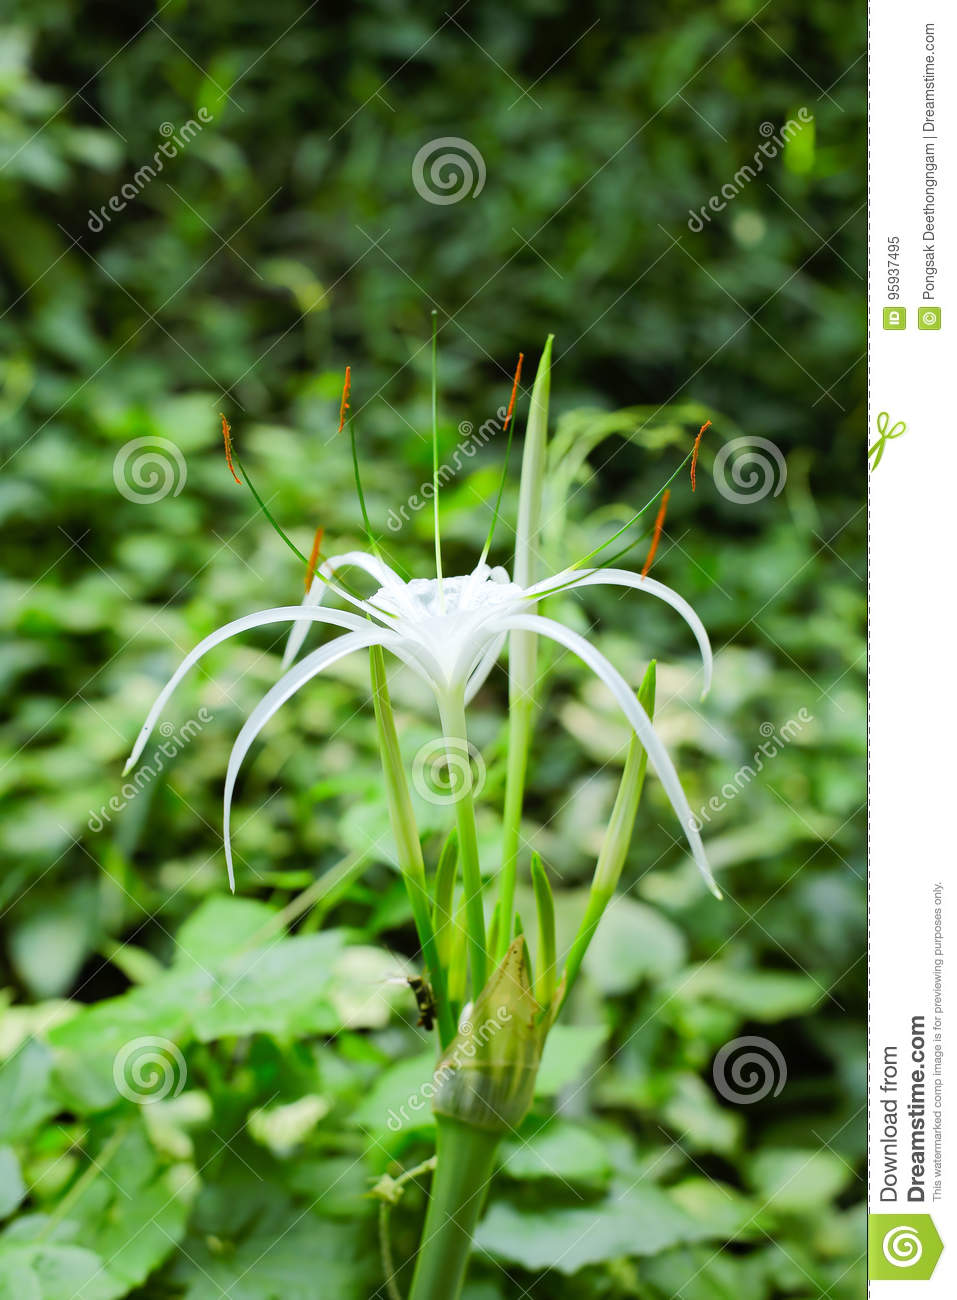 Spider lily flower stock image image of crinum flowering 95937495 download spider lily flower stock image image of crinum flowering 95937495 izmirmasajfo